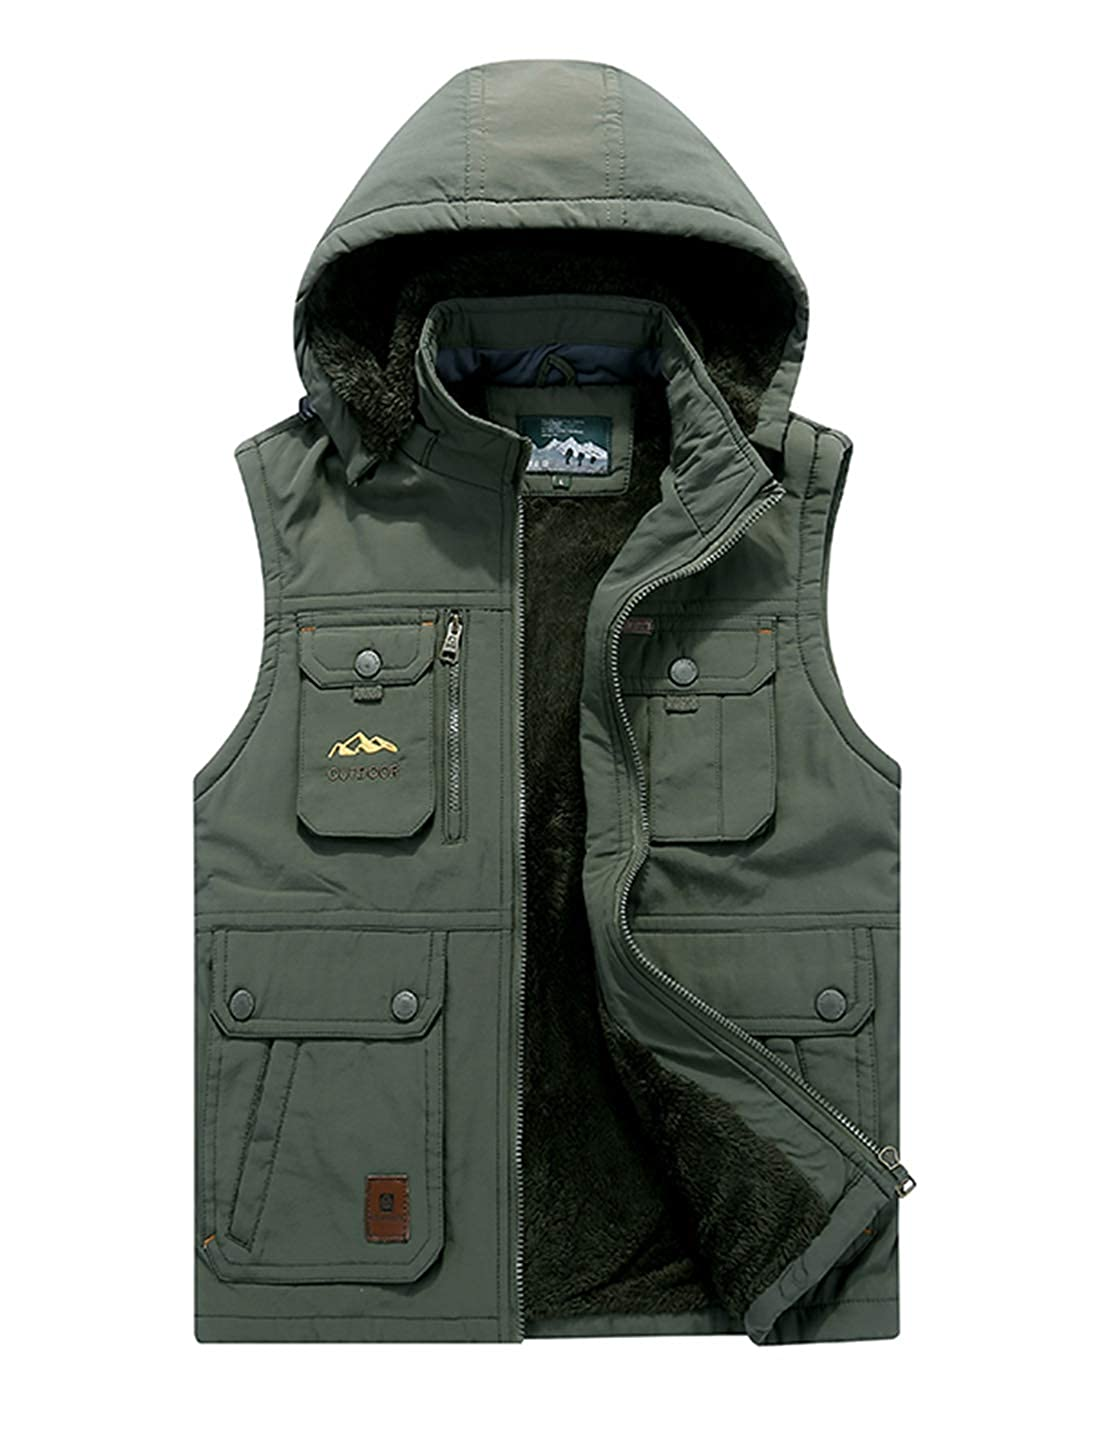 Gihuo Men's Outdoor Fleece Lined Vest Winter Thick Sherpa Fishing Hooded Vest Jacket with Pockets